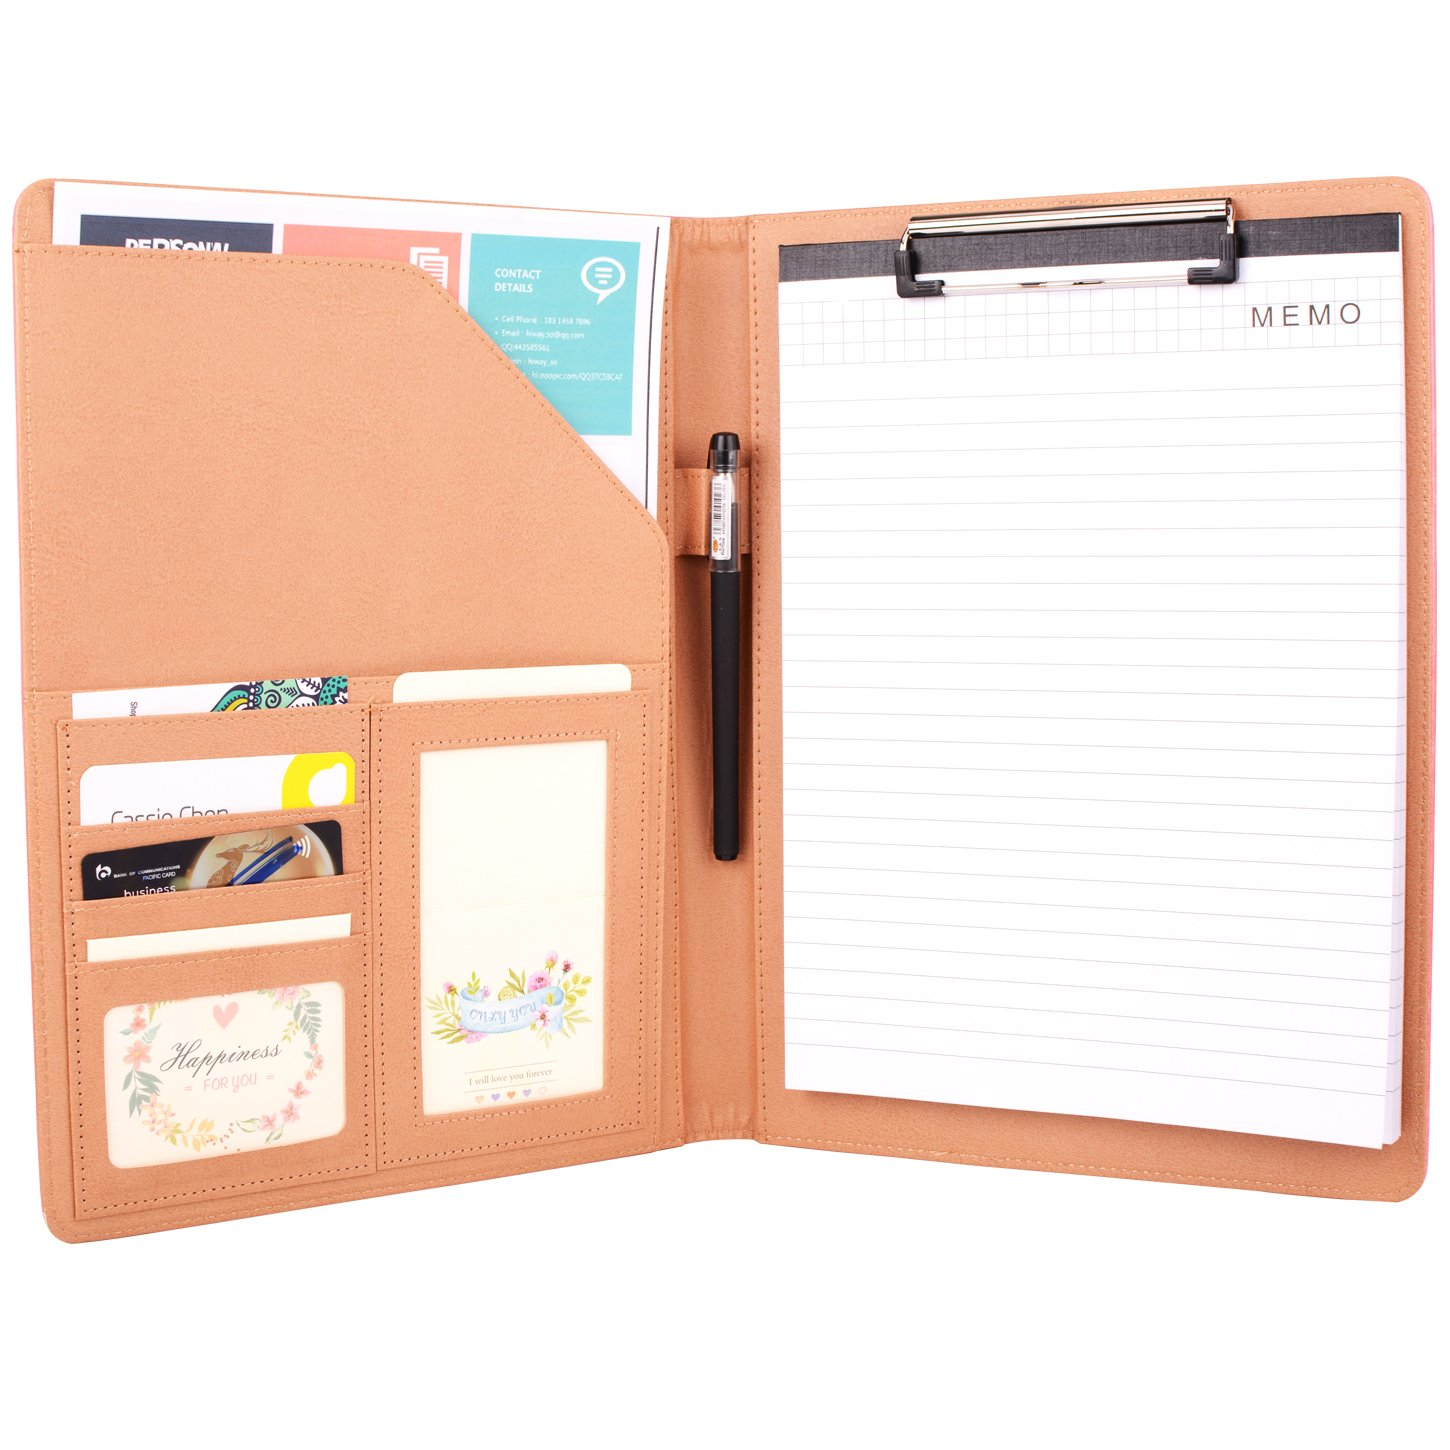 Padfolio Resume Portfolio Folder - Interview / Business Card Holder ,Pen Holder,With Letter-Sized Writing Pad (Pink)